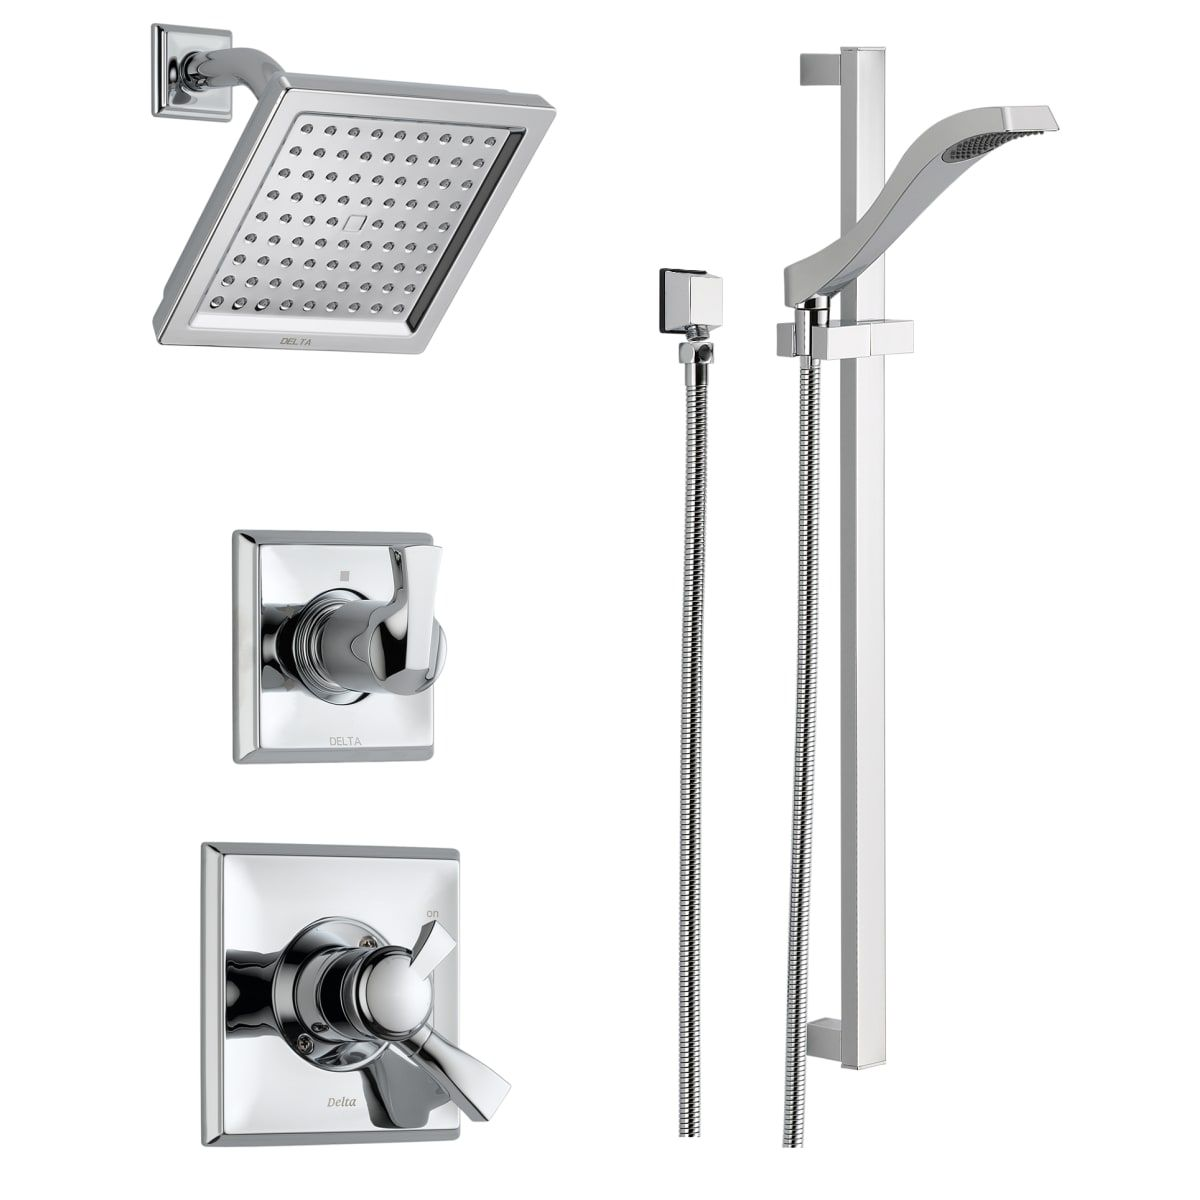 Delta Dss Dryden 1701 Shower Systems Shower Heads